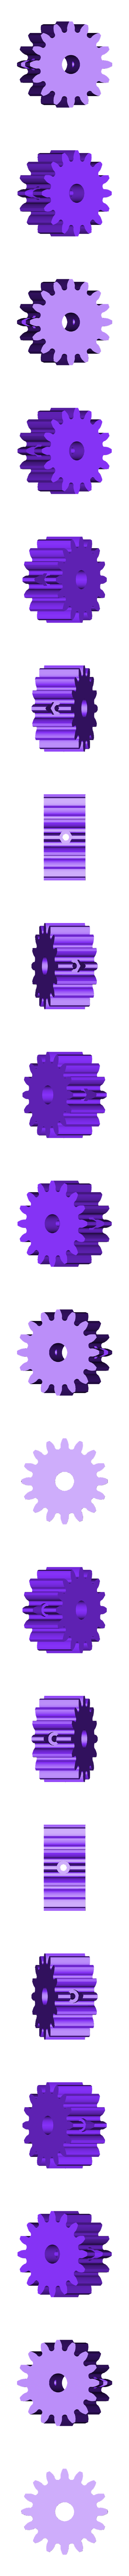 bolttrought2.stl Download free STL file 4 ways to attach gears to the shaft (example gears) • Object to 3D print, LetsPrintYT